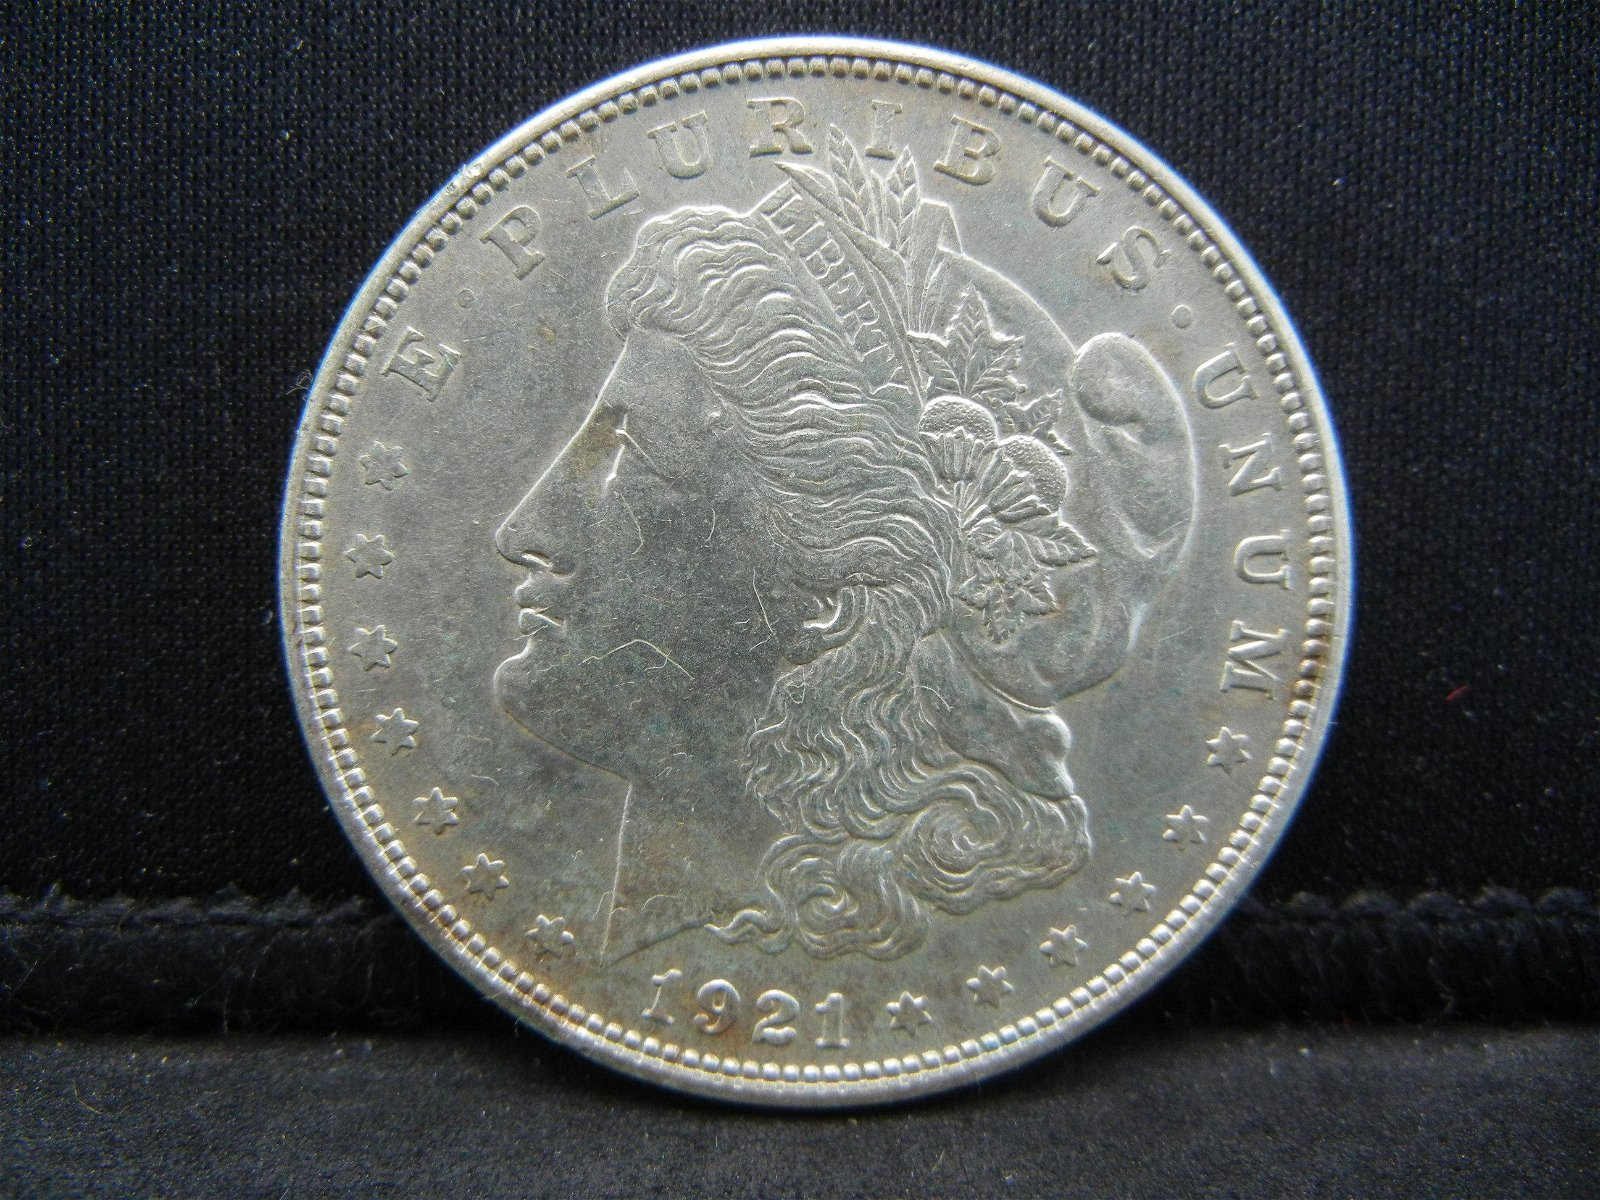 1921-S MORGAN SILVER (90%) DOLLAR, (ONLY 21.7 MILL EVER